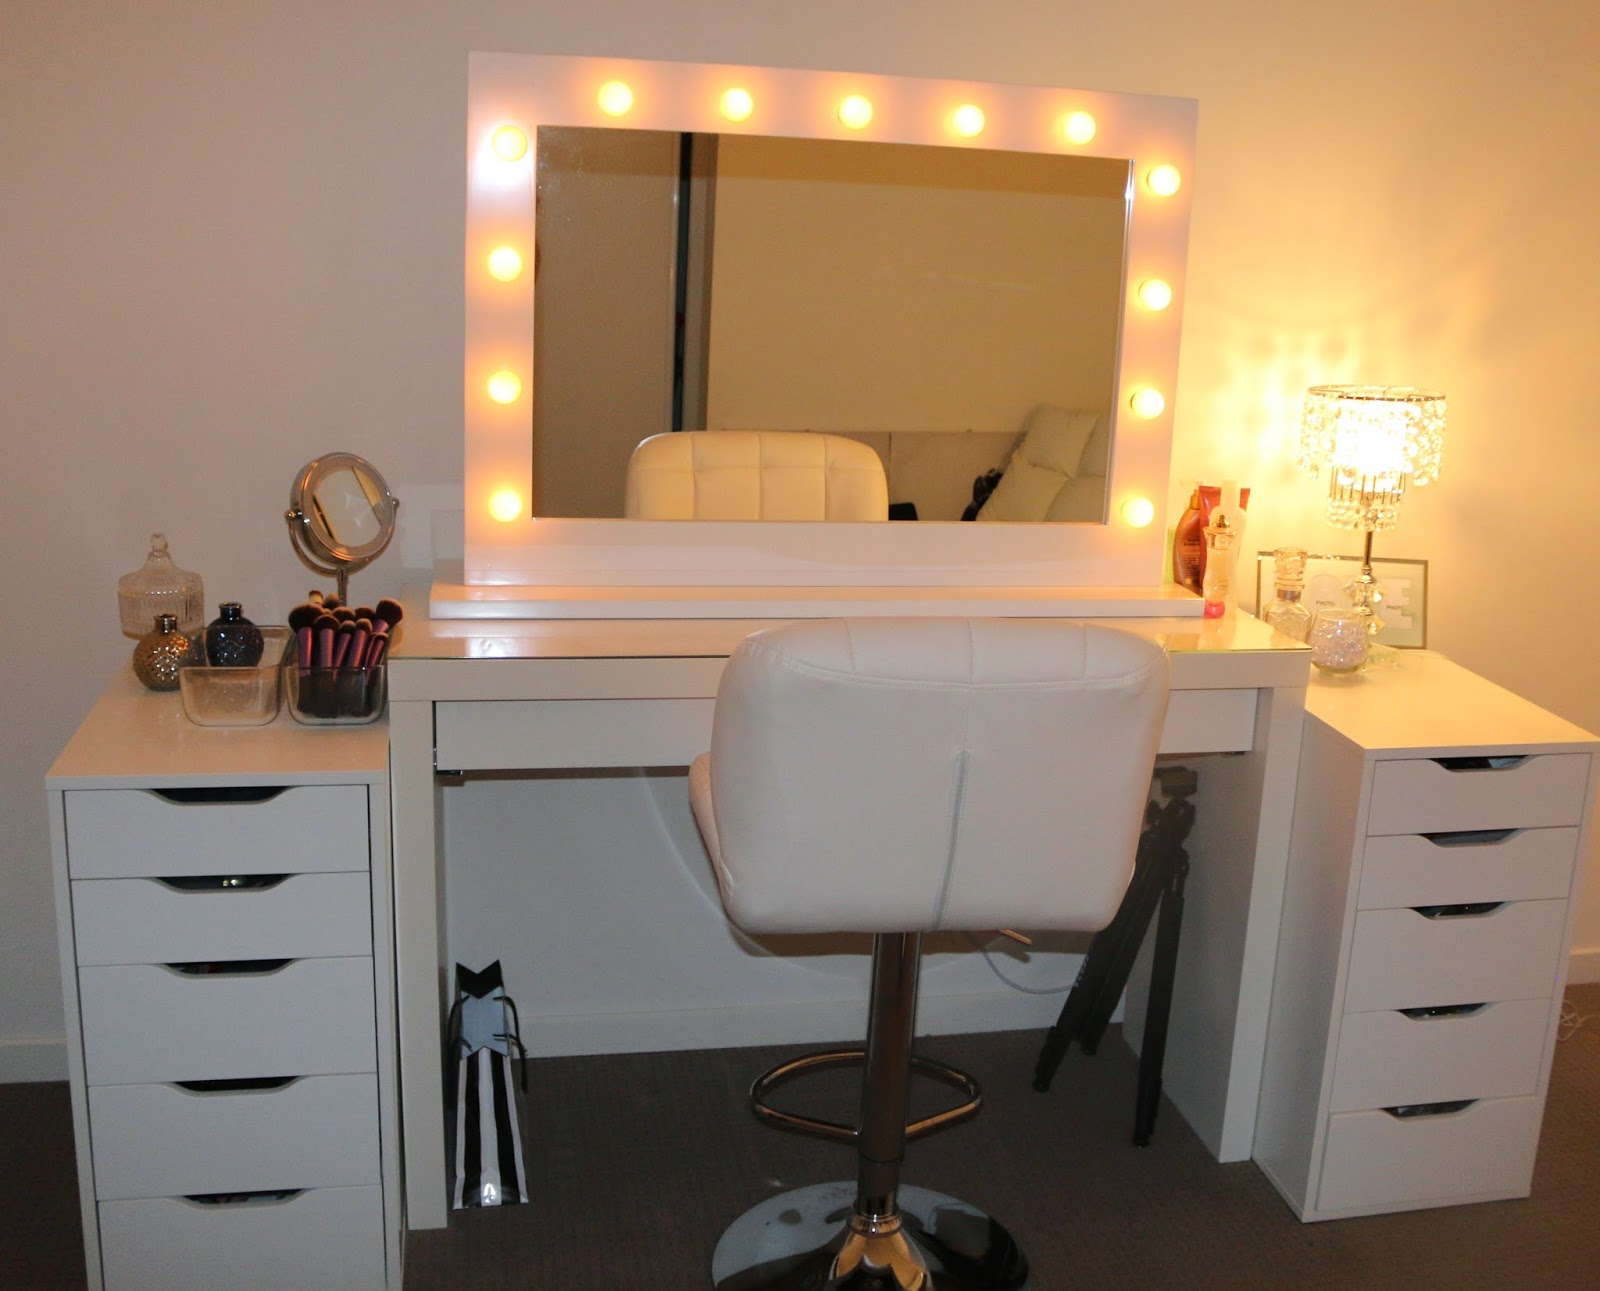 ROGUE Hair Extensions IKEA MAKEUP VANITY Amp HOLLYWOOD LIGHTS Makeup vanity  ikea  Furniture Good Looking. Dressing Table Lights Ikea